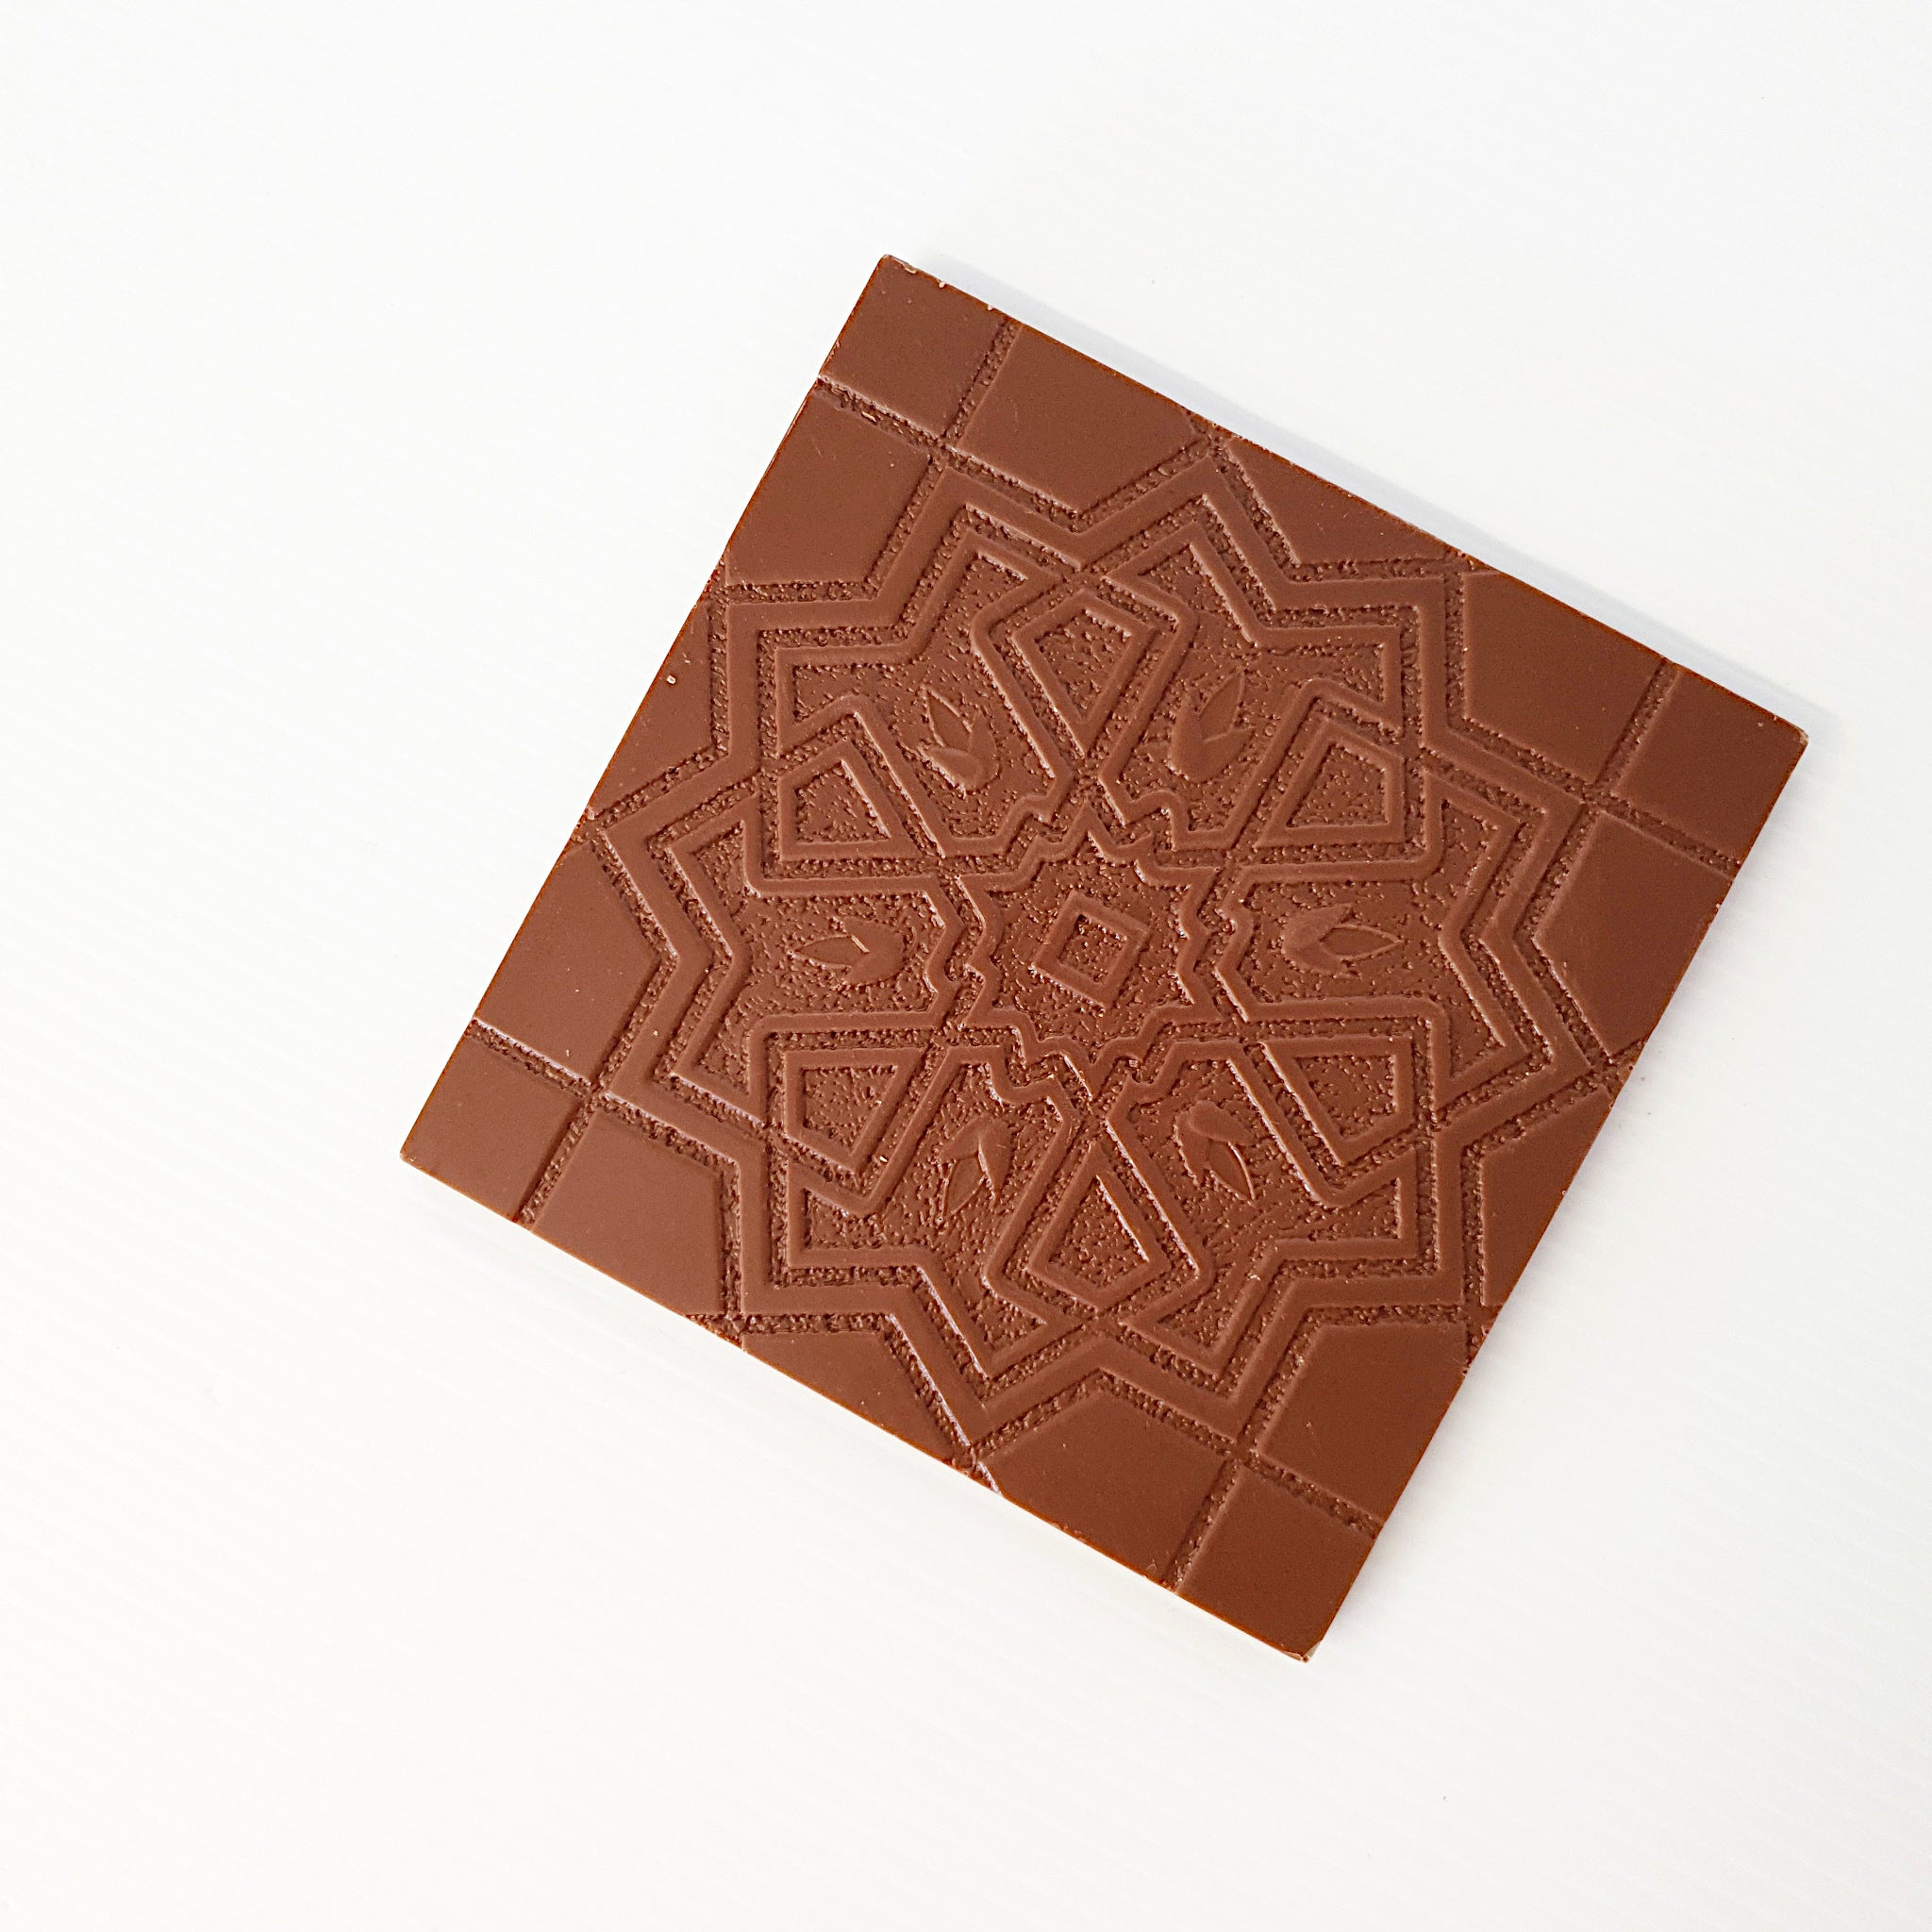 Milk chocolate bar handmade on the south coast of New South Wales. Made with Callebaut Belgian chocolate. Beautifully designed delicious treats made for everyone to enjoy